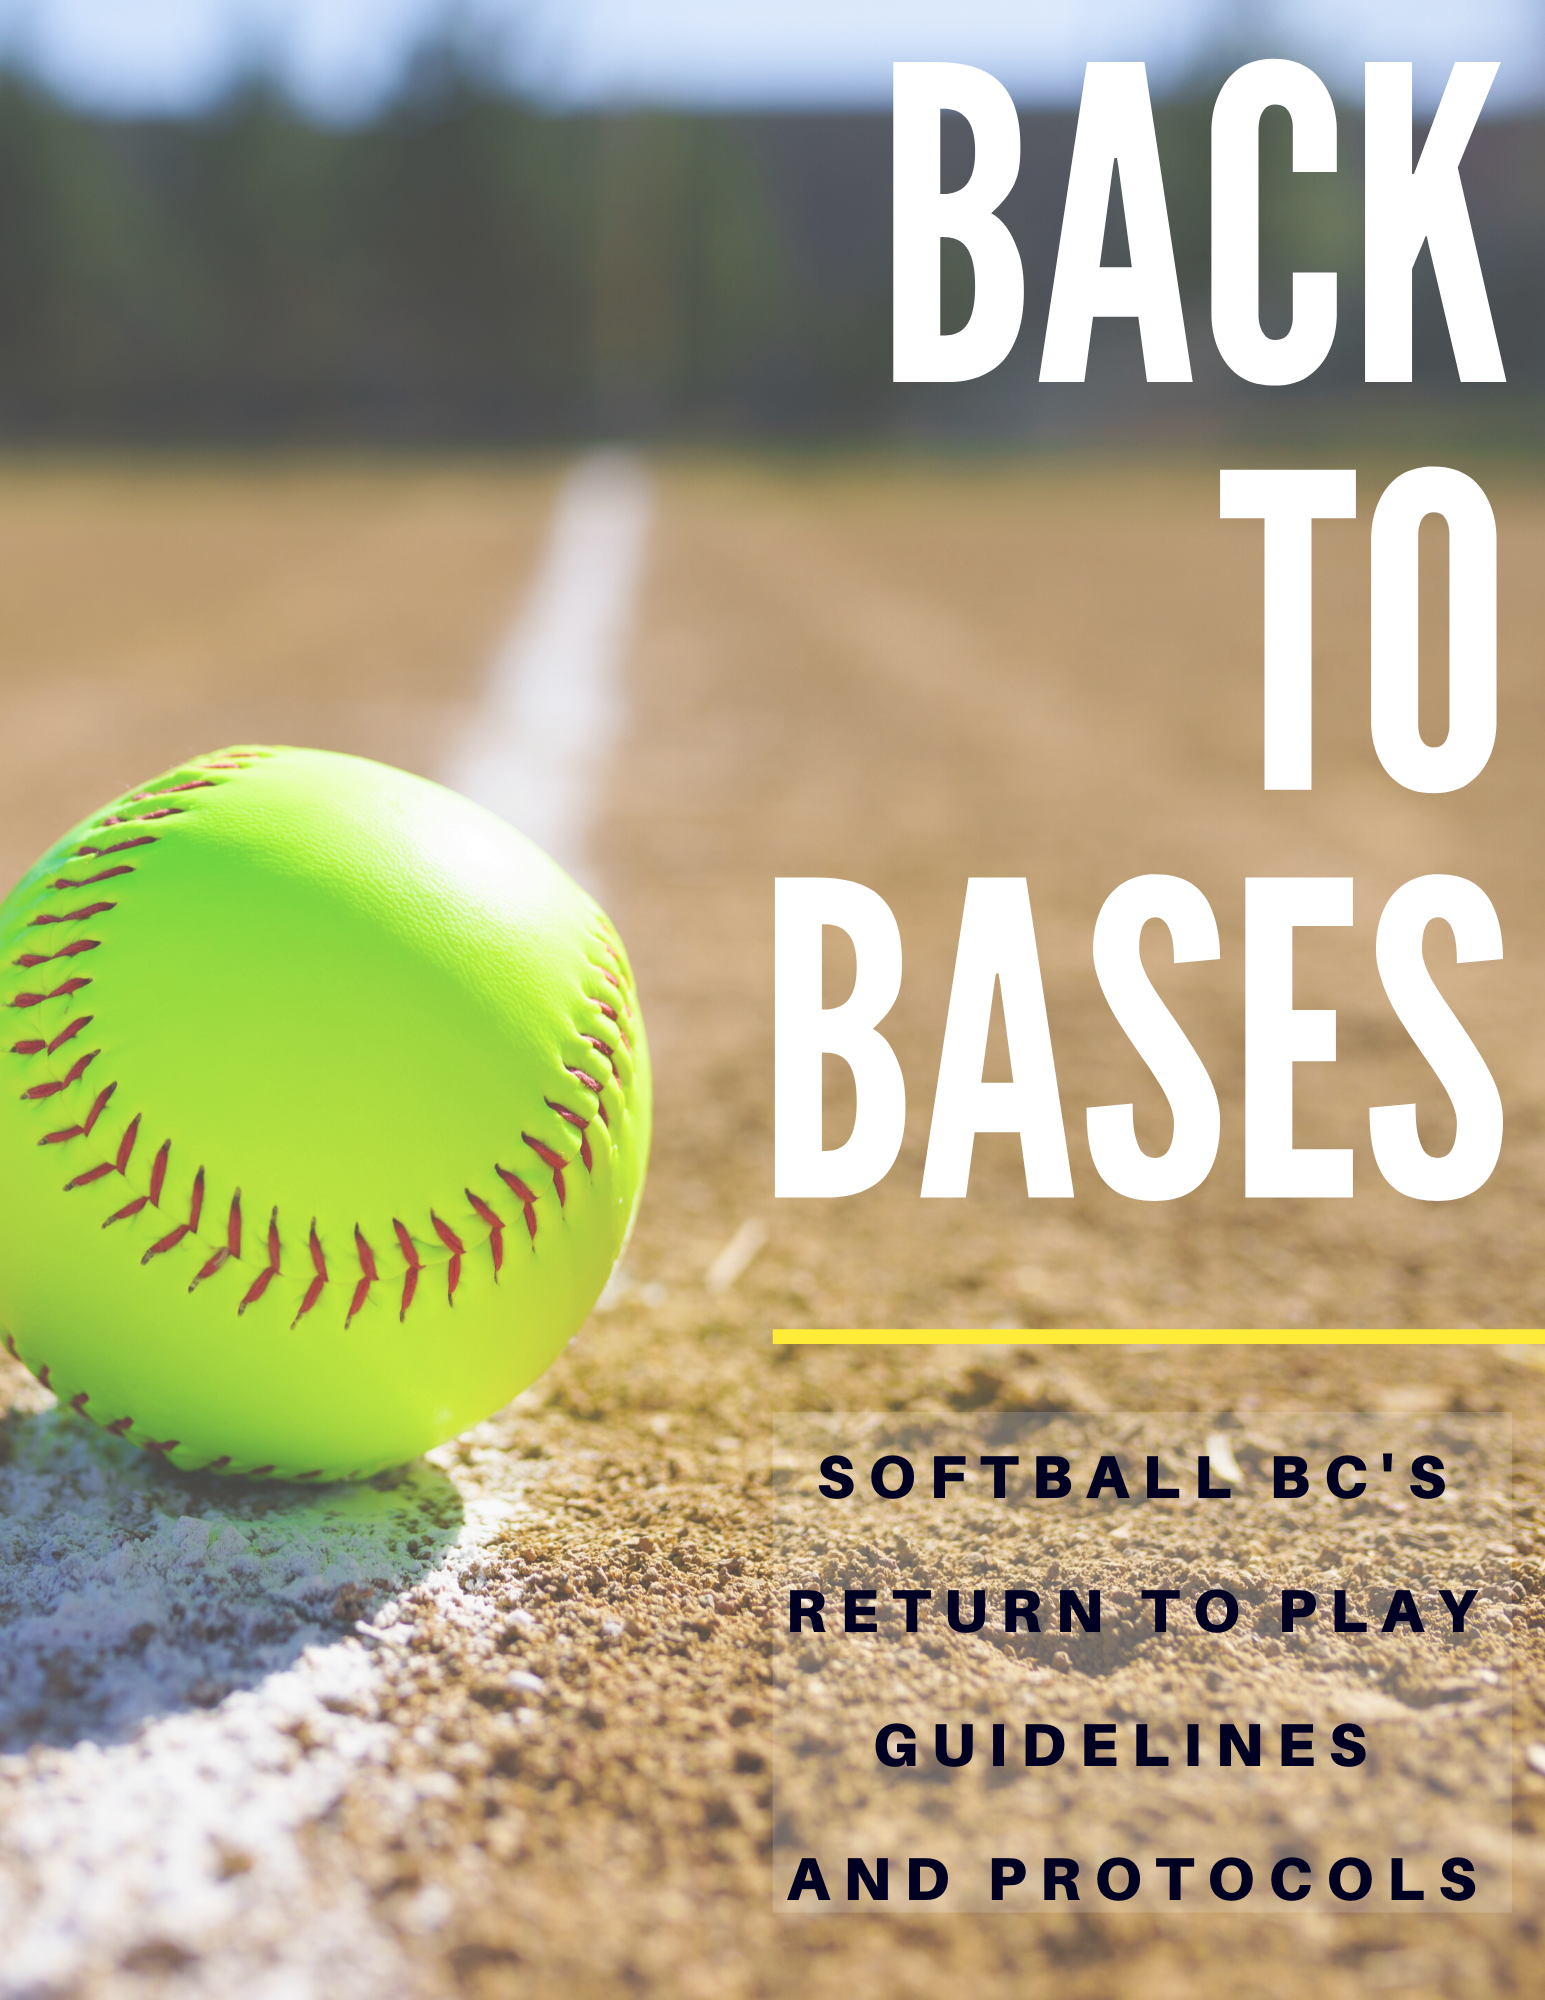 BAck-to-Bases